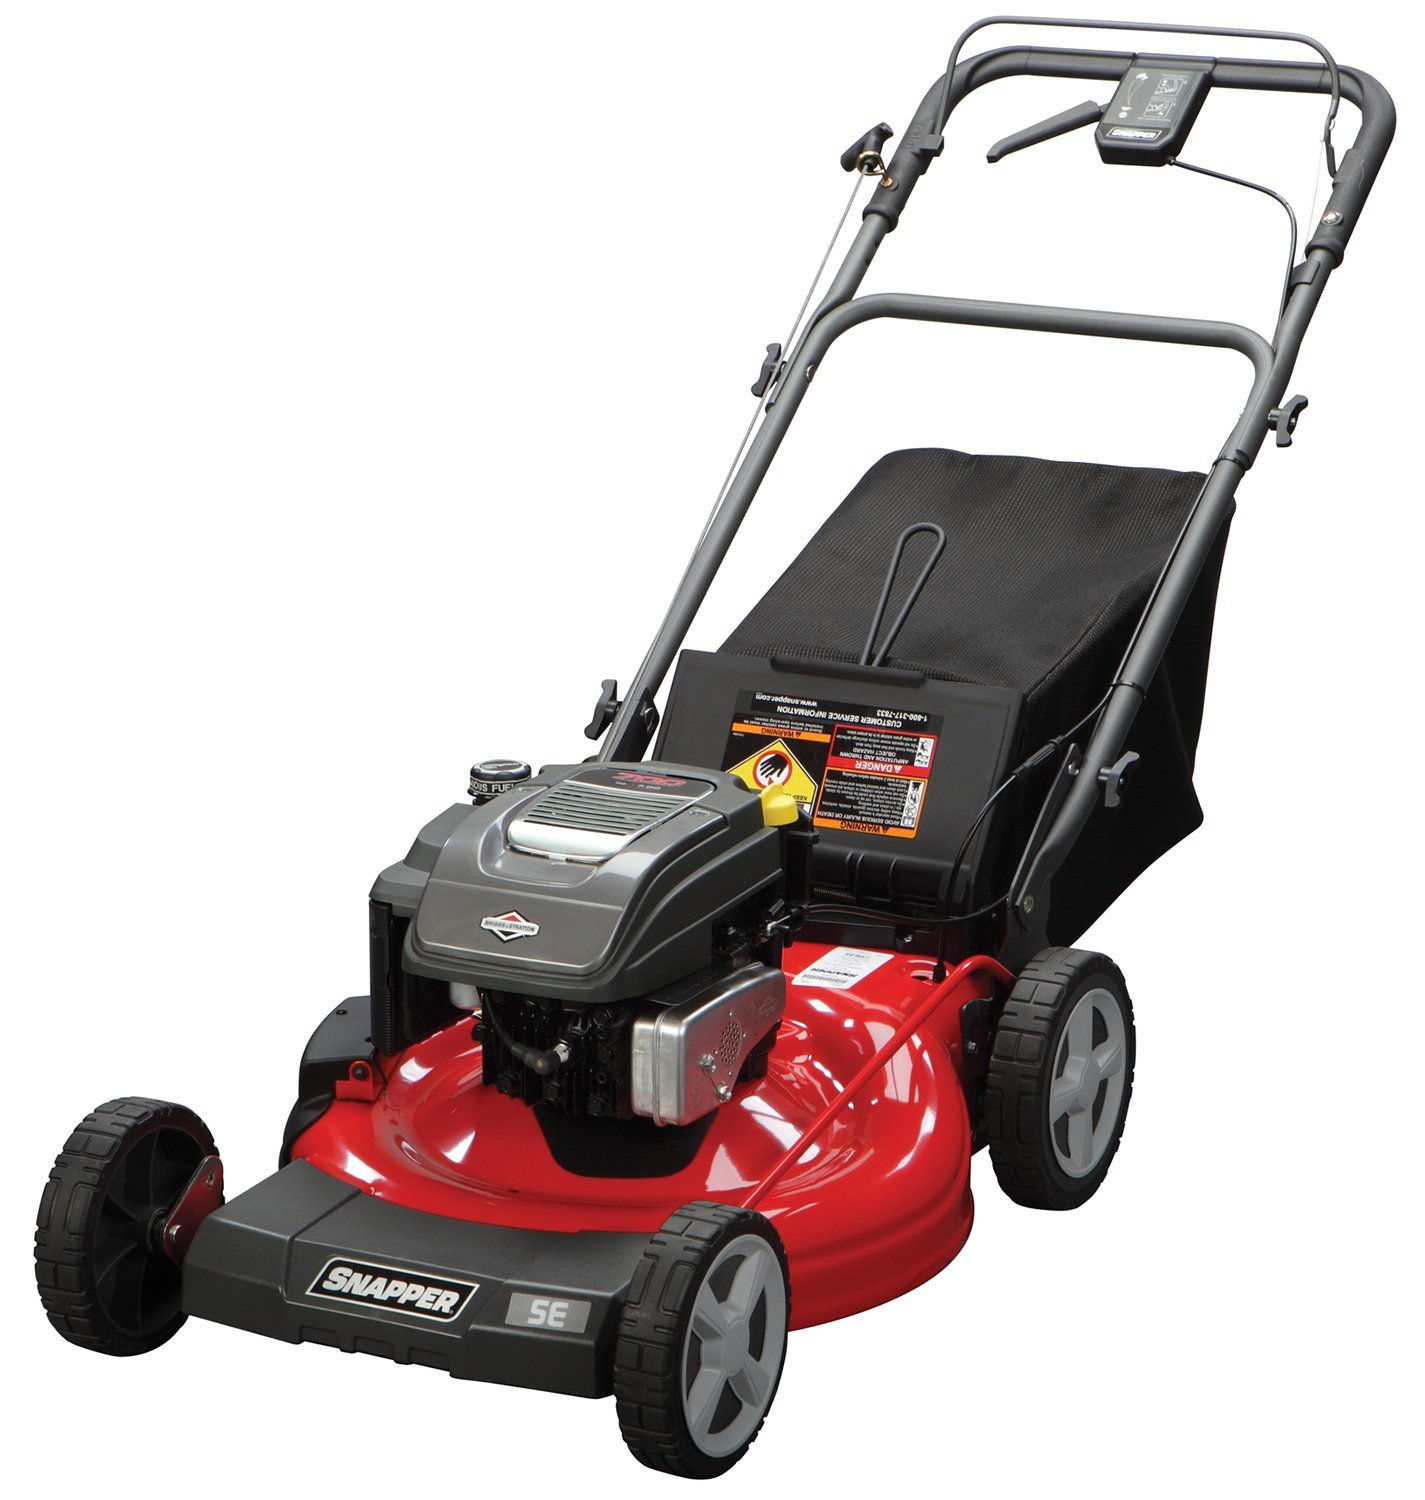 Honda Gcv160 Engine Snapper SP90 Self Propelled Lawn Mower Review ...